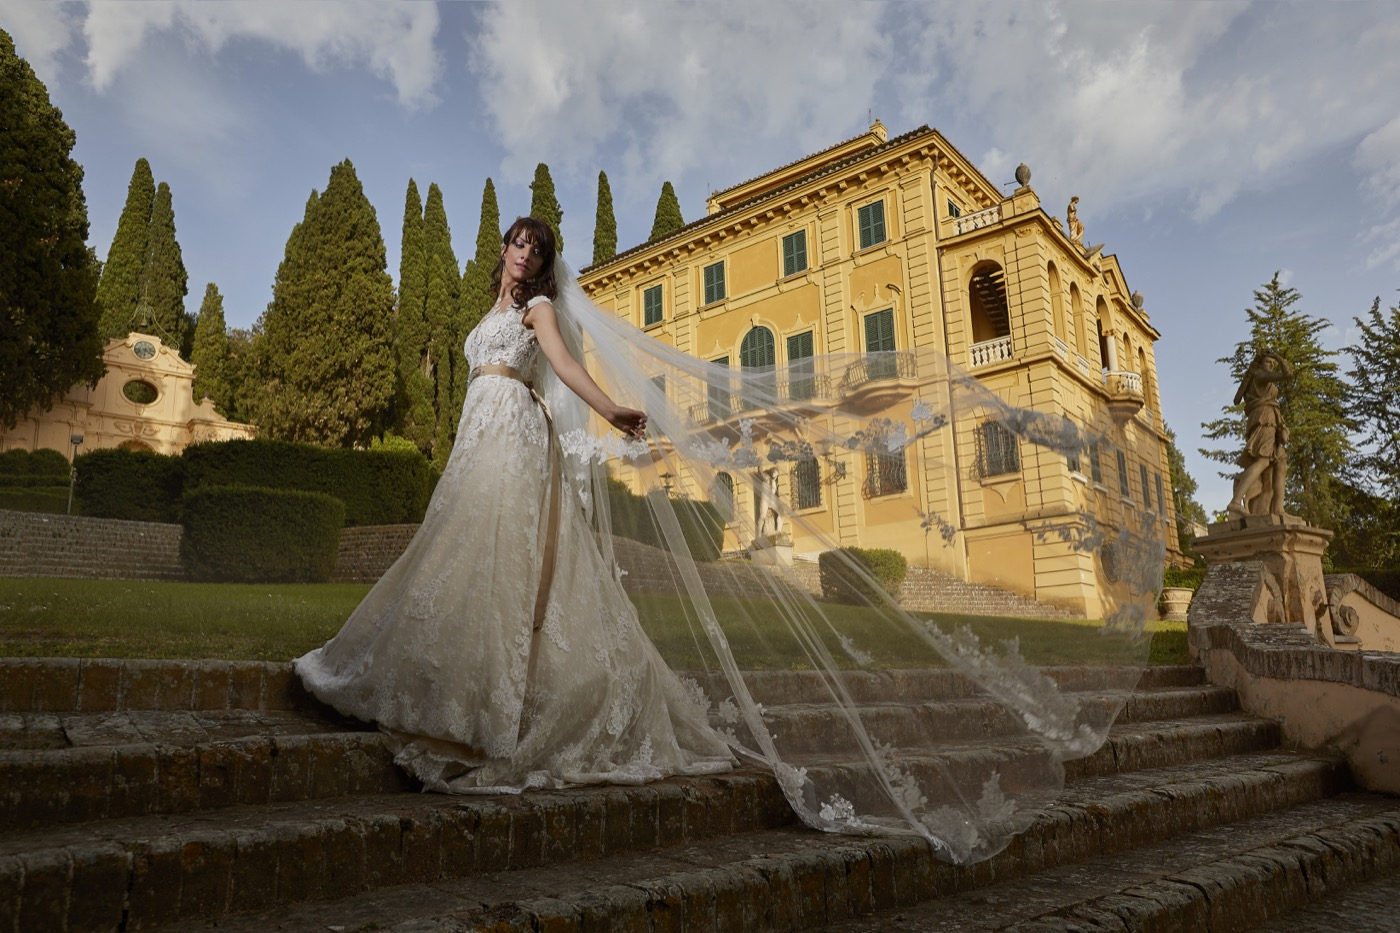 Claudio-Coppola-wedding-photographer-la-scuderia-eventi-torgiano-28